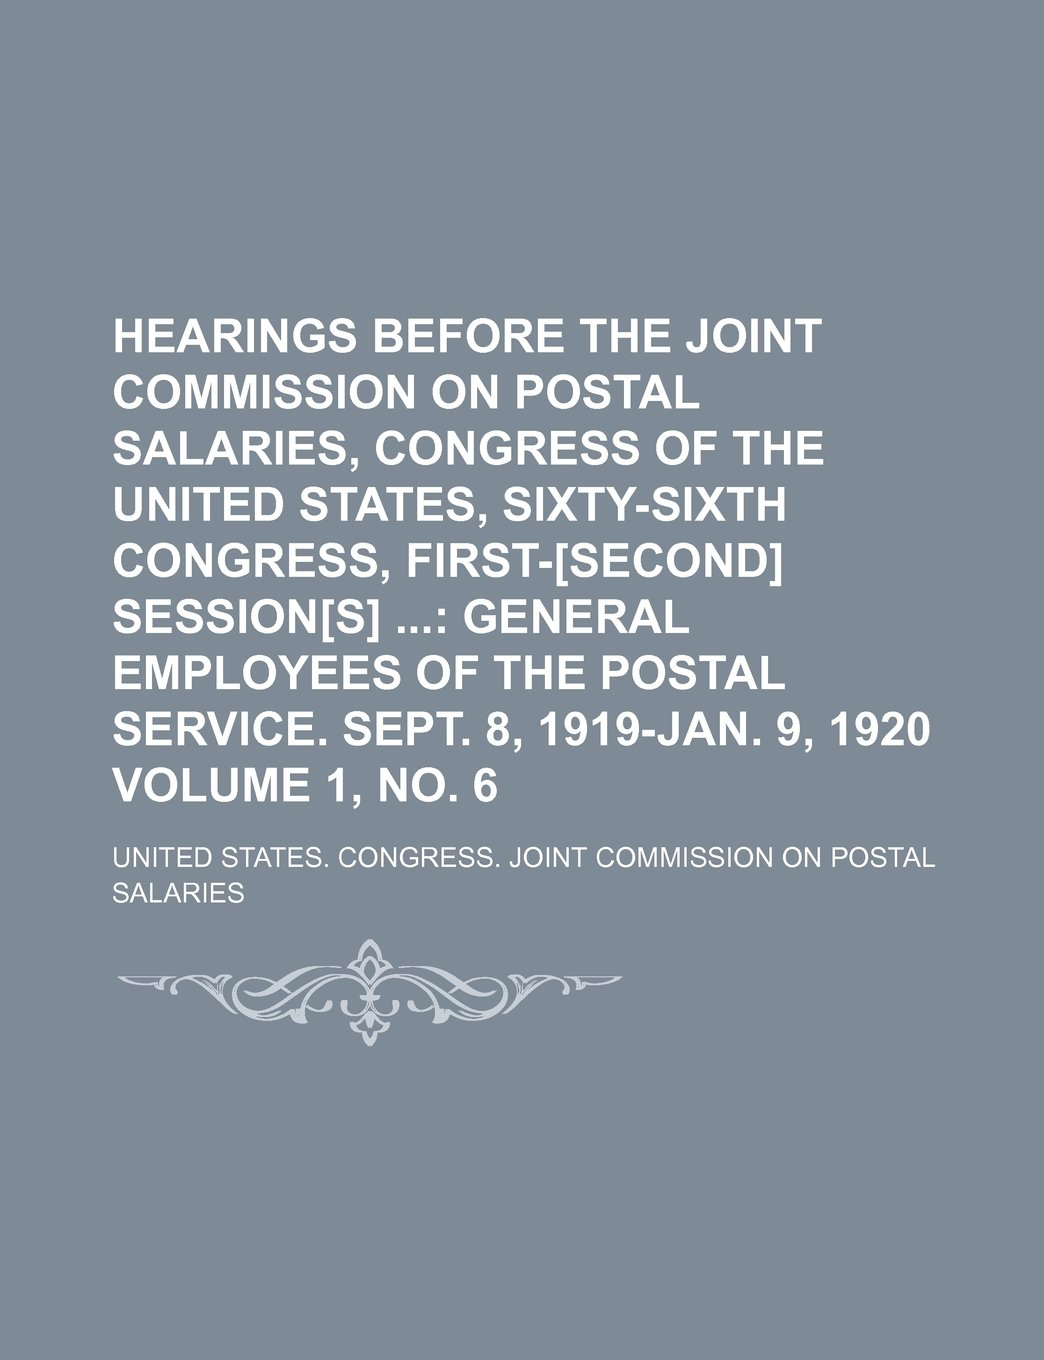 Hearings Before the Joint Commission on Postal Salaries, Congress of the United States, Sixty-Sixth Congress, First-[second] Session[s]  Volume 1, no. ... postal service. Sept. 8, 1919-Jan. 9, 1920 PDF